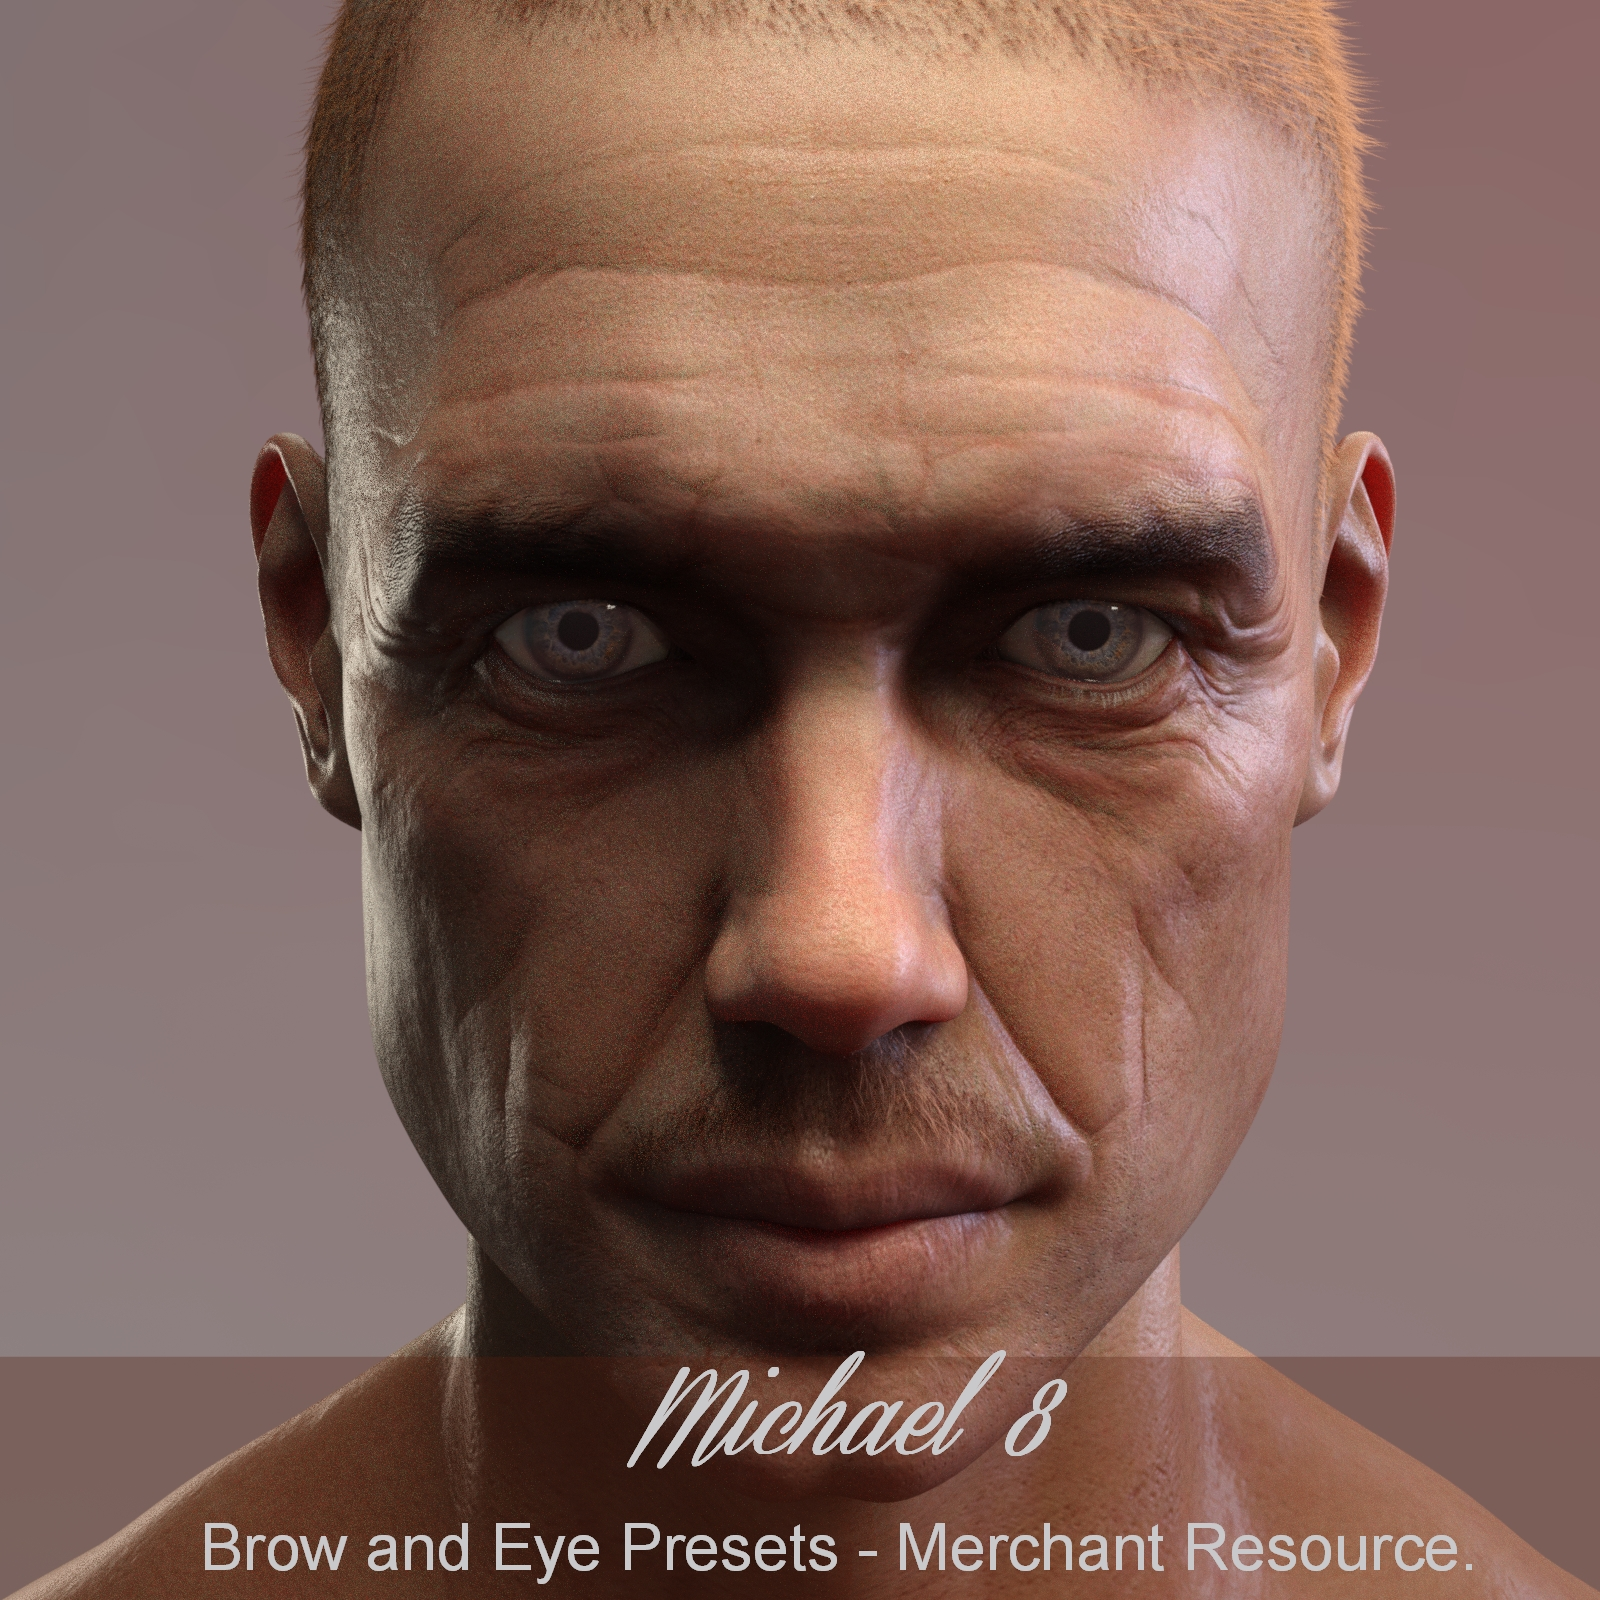 Brow and Eye Presets for Michael 8 - Merchant Resource